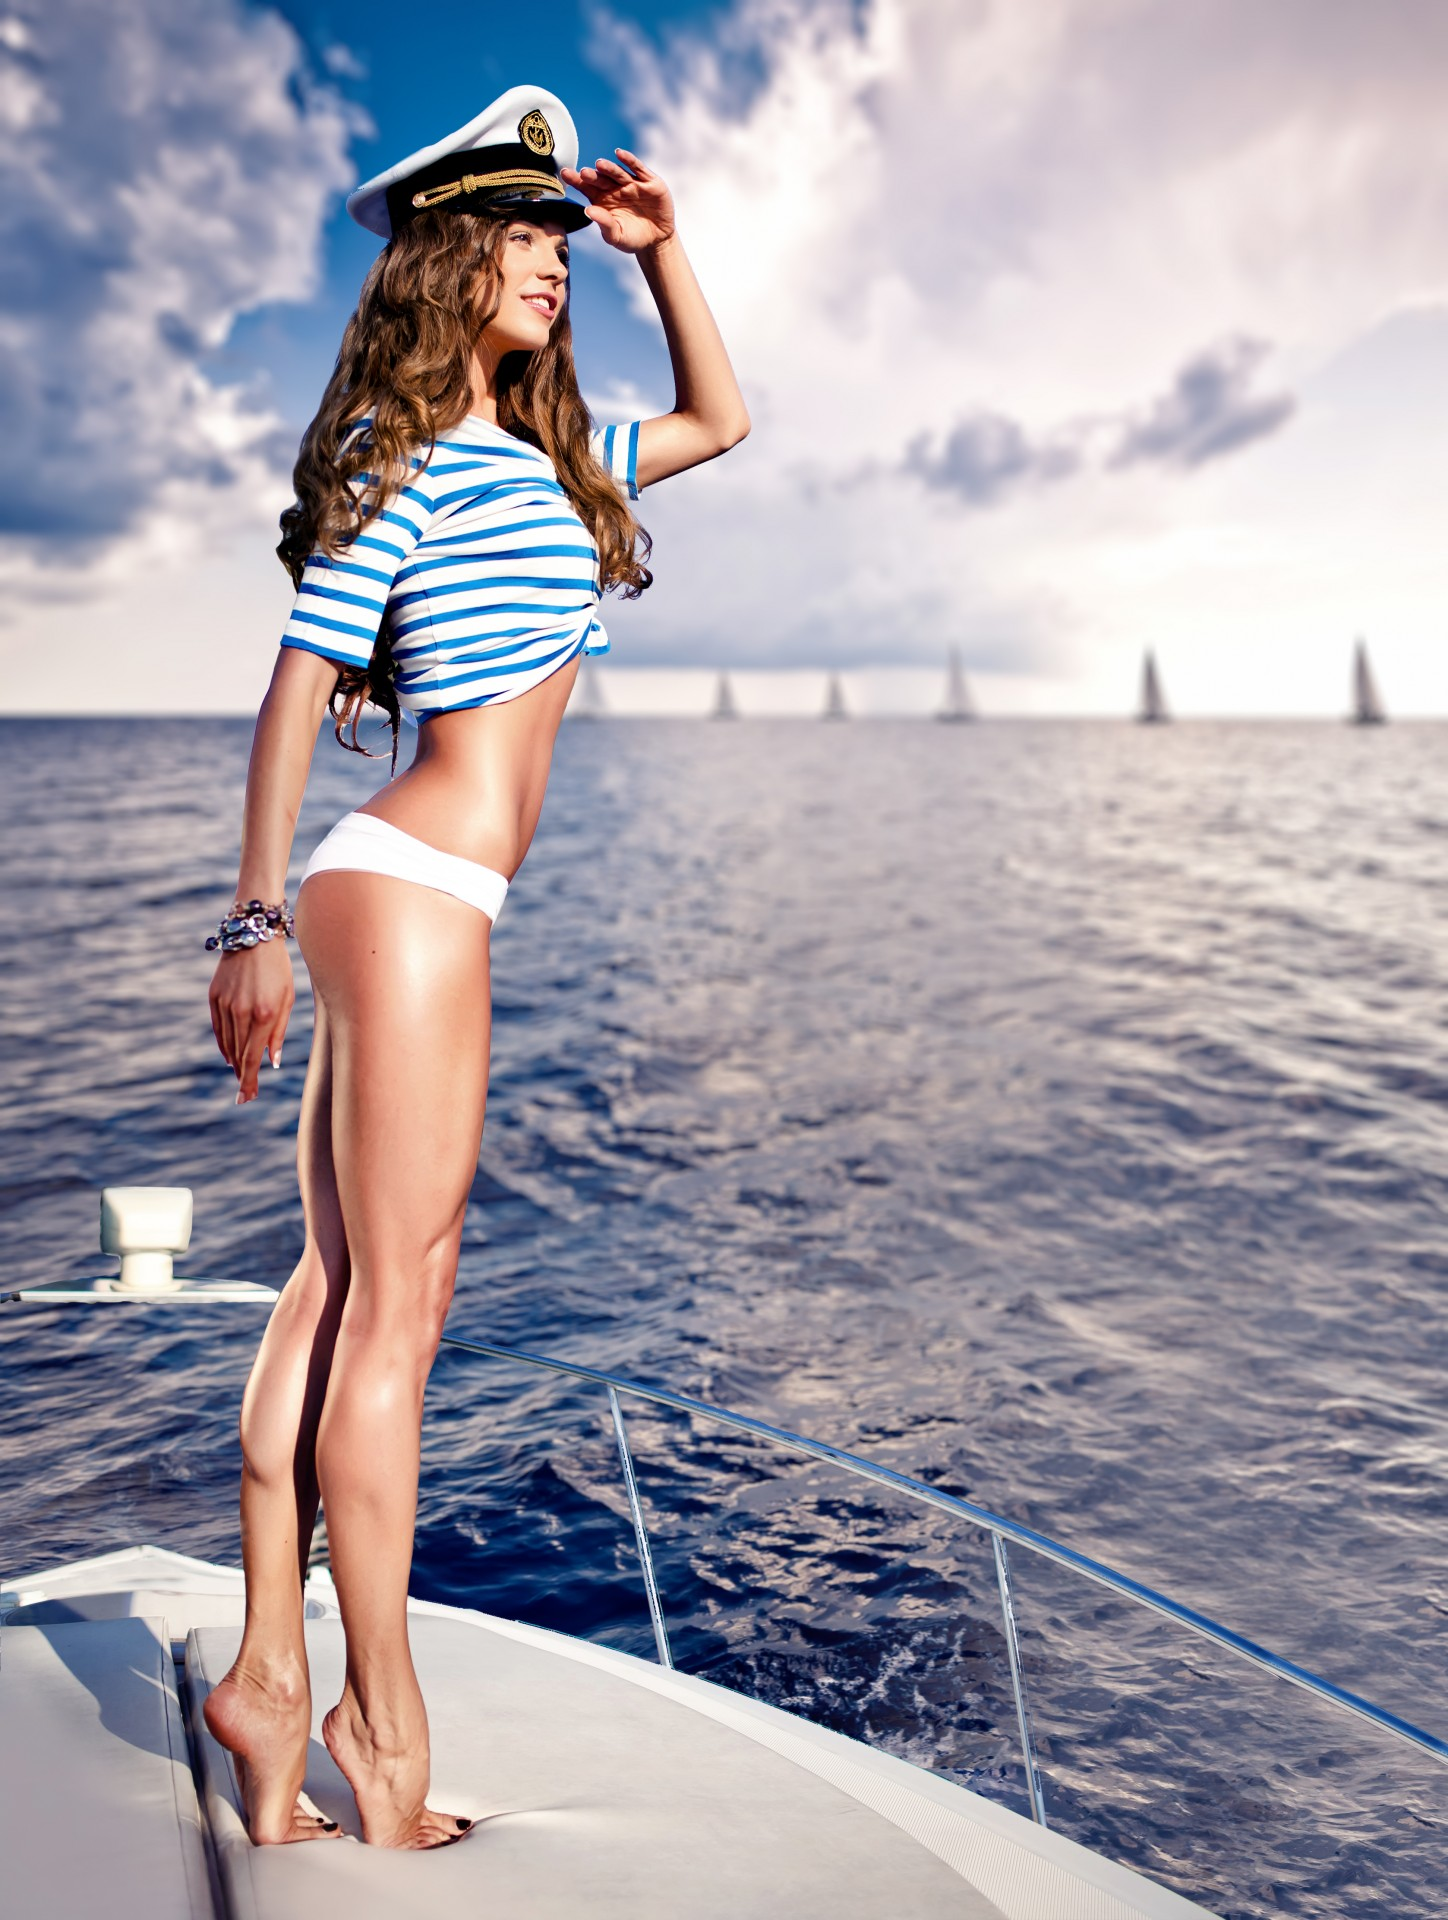 Smooth Skin Ahoy! Anchors away with silky, soft, hair-free limbs!